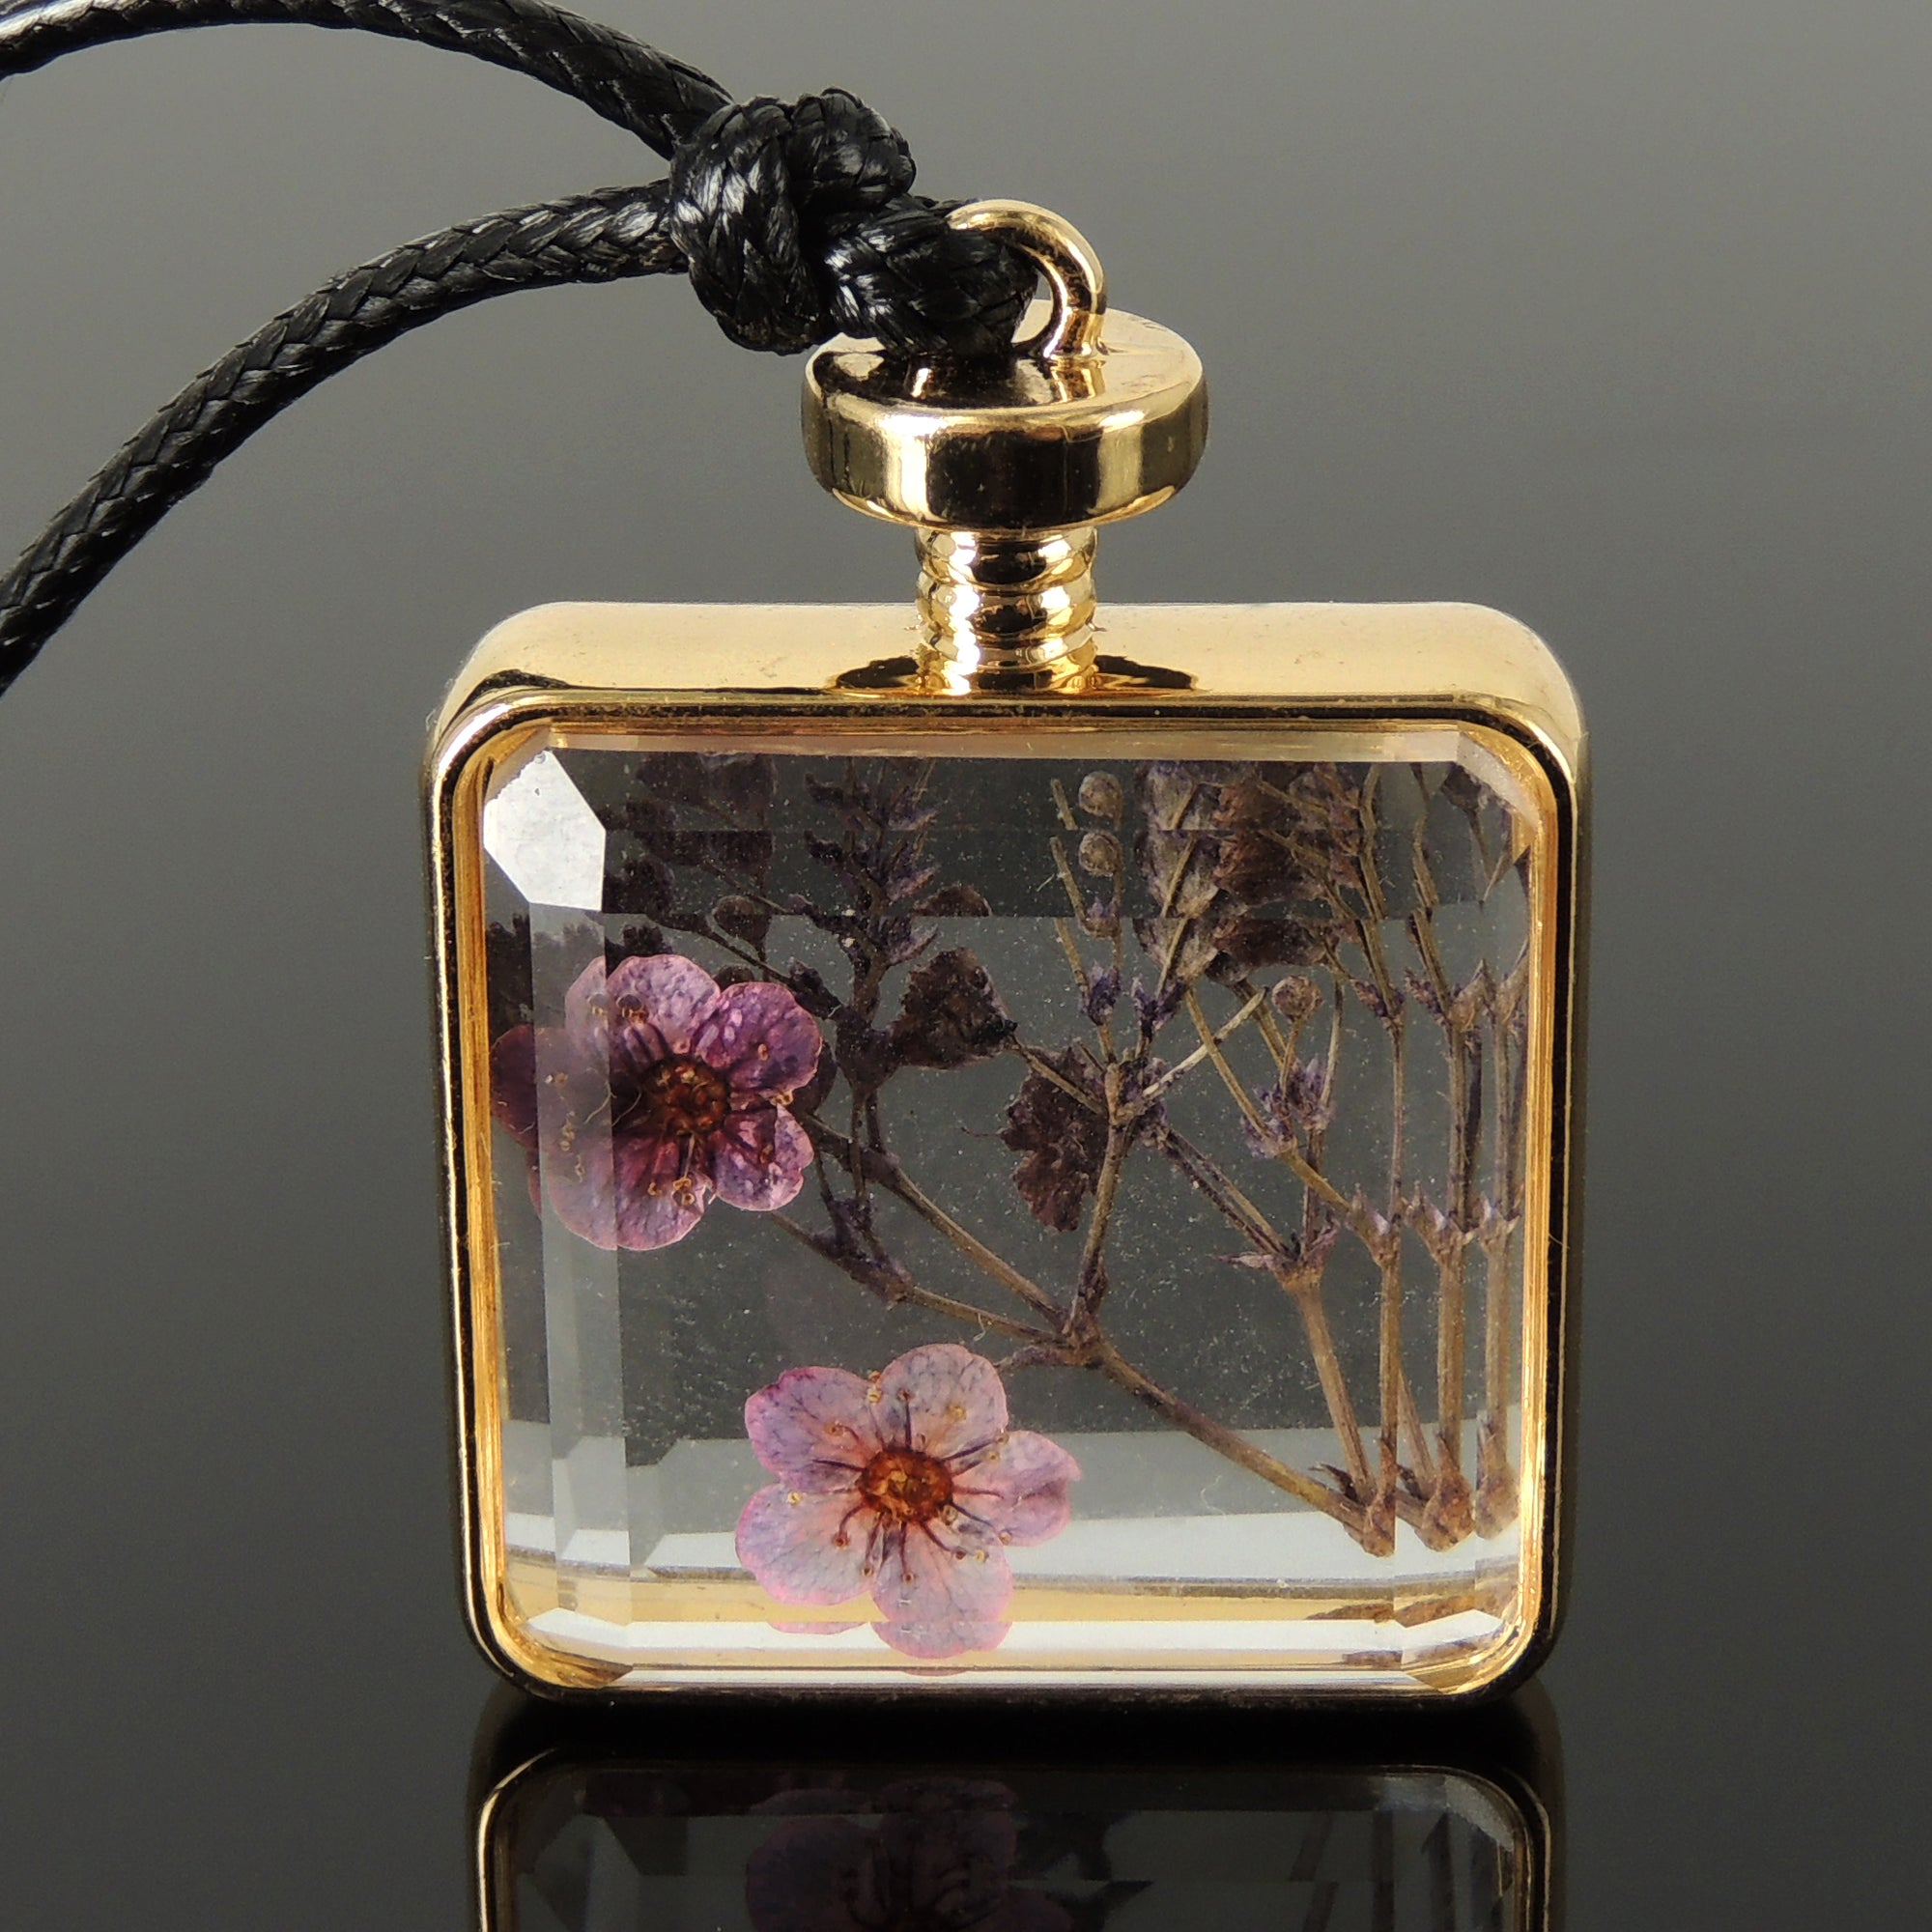 Handmade Bottled Dried Flower Collection - Whimsical Glass Perfume Bottle Pendant Necklace, Natural Pressed Purple Flower Variety, Floating Glass Shadow Box, Easily Adjustable Wax Rope